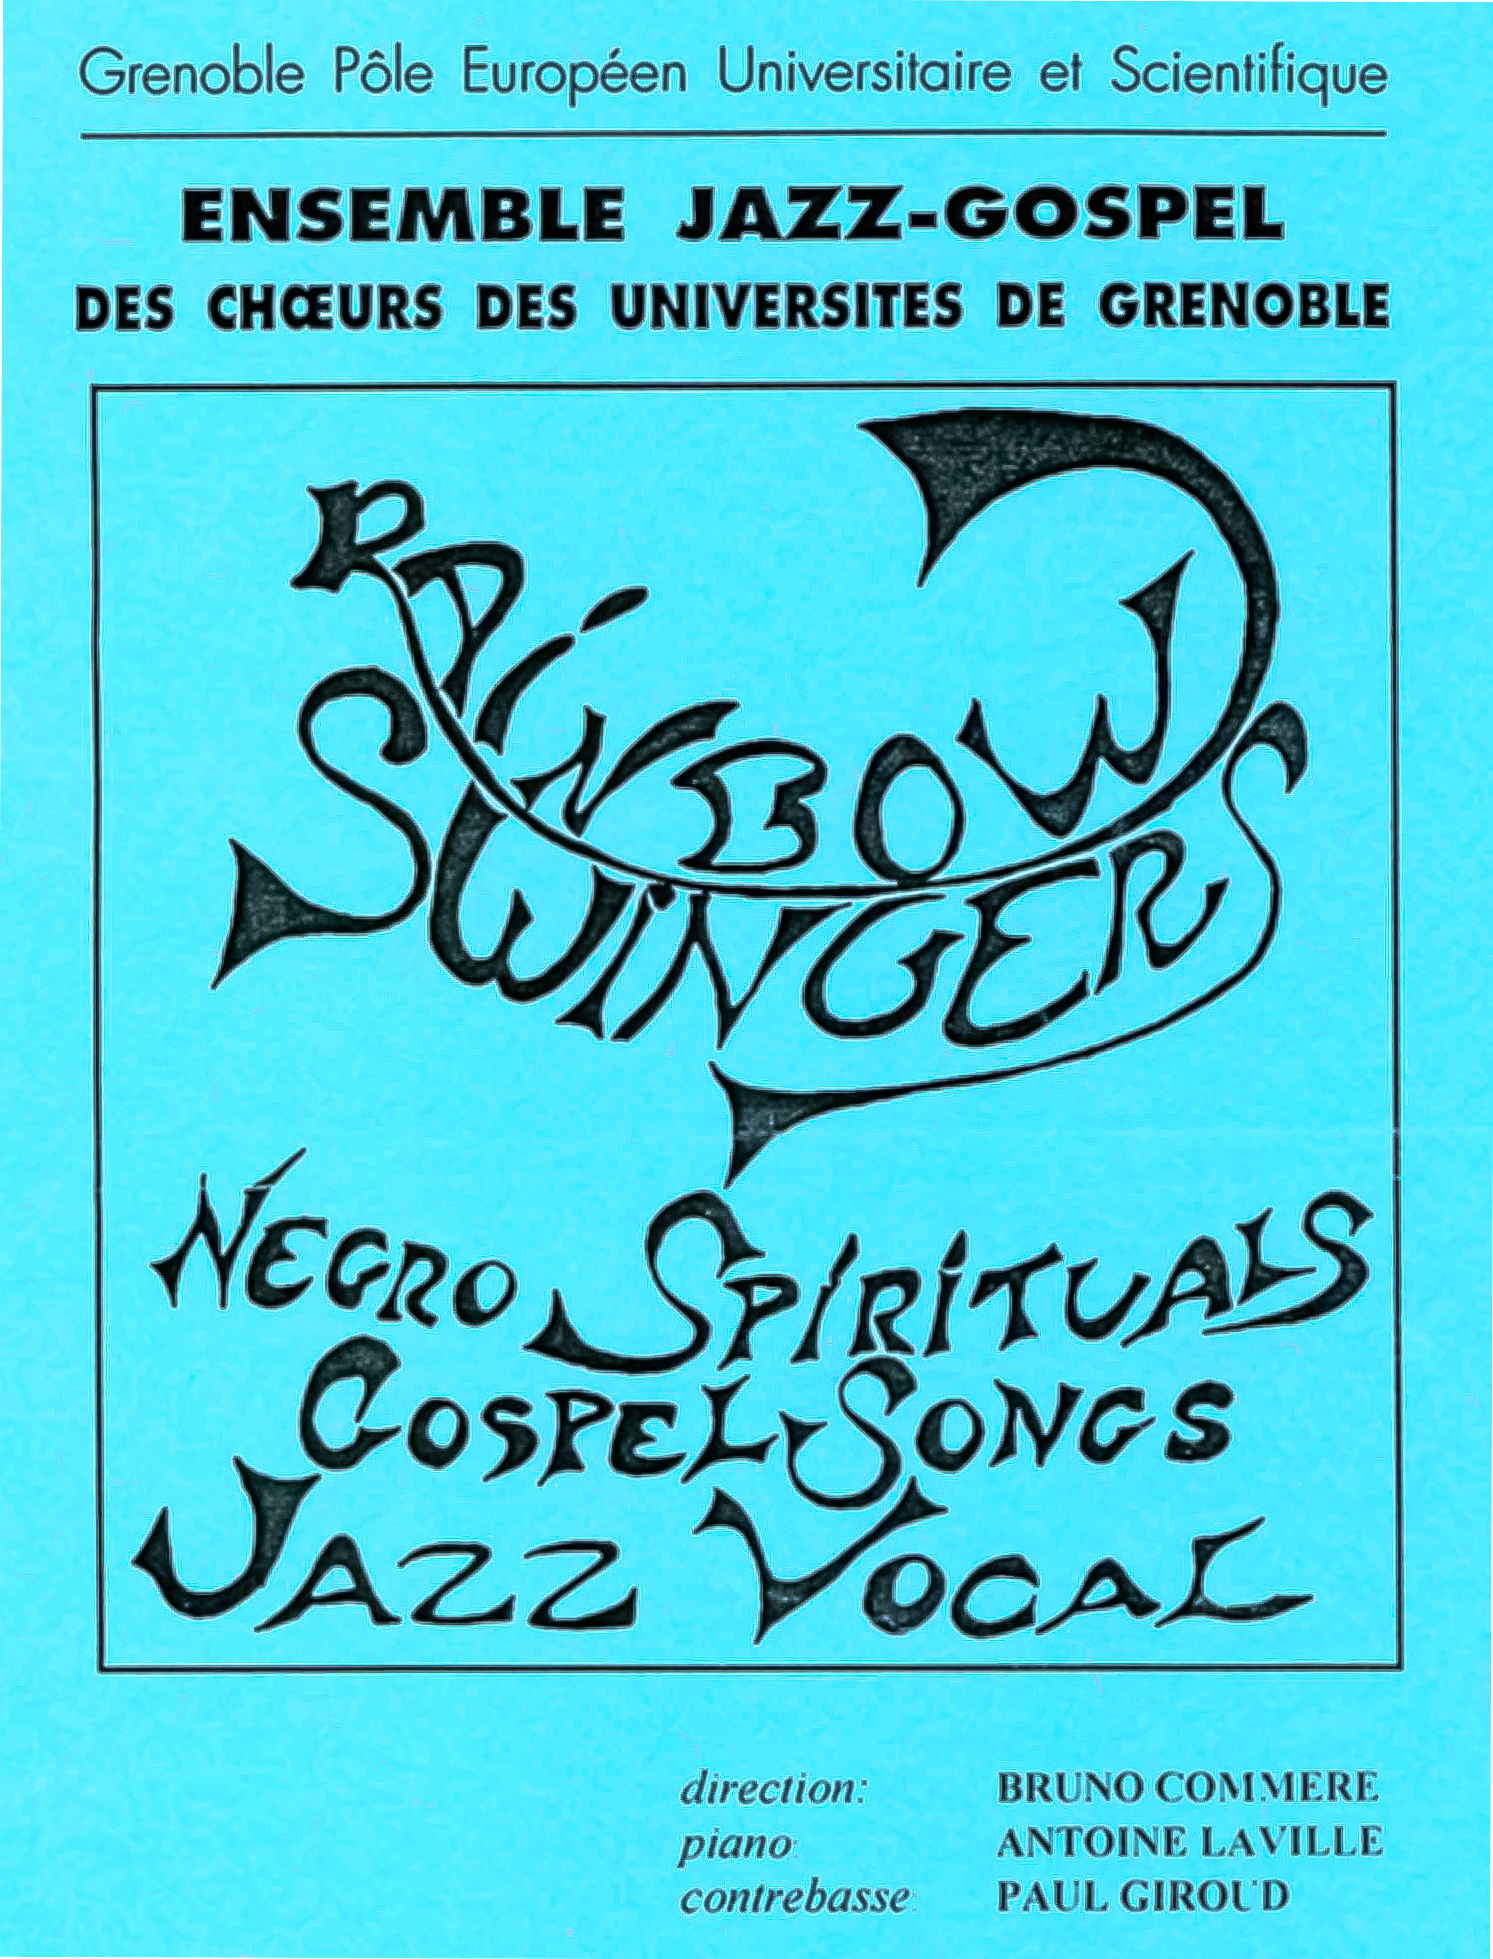 Ensemble RAINBOW SWINGERS (Grenoble)